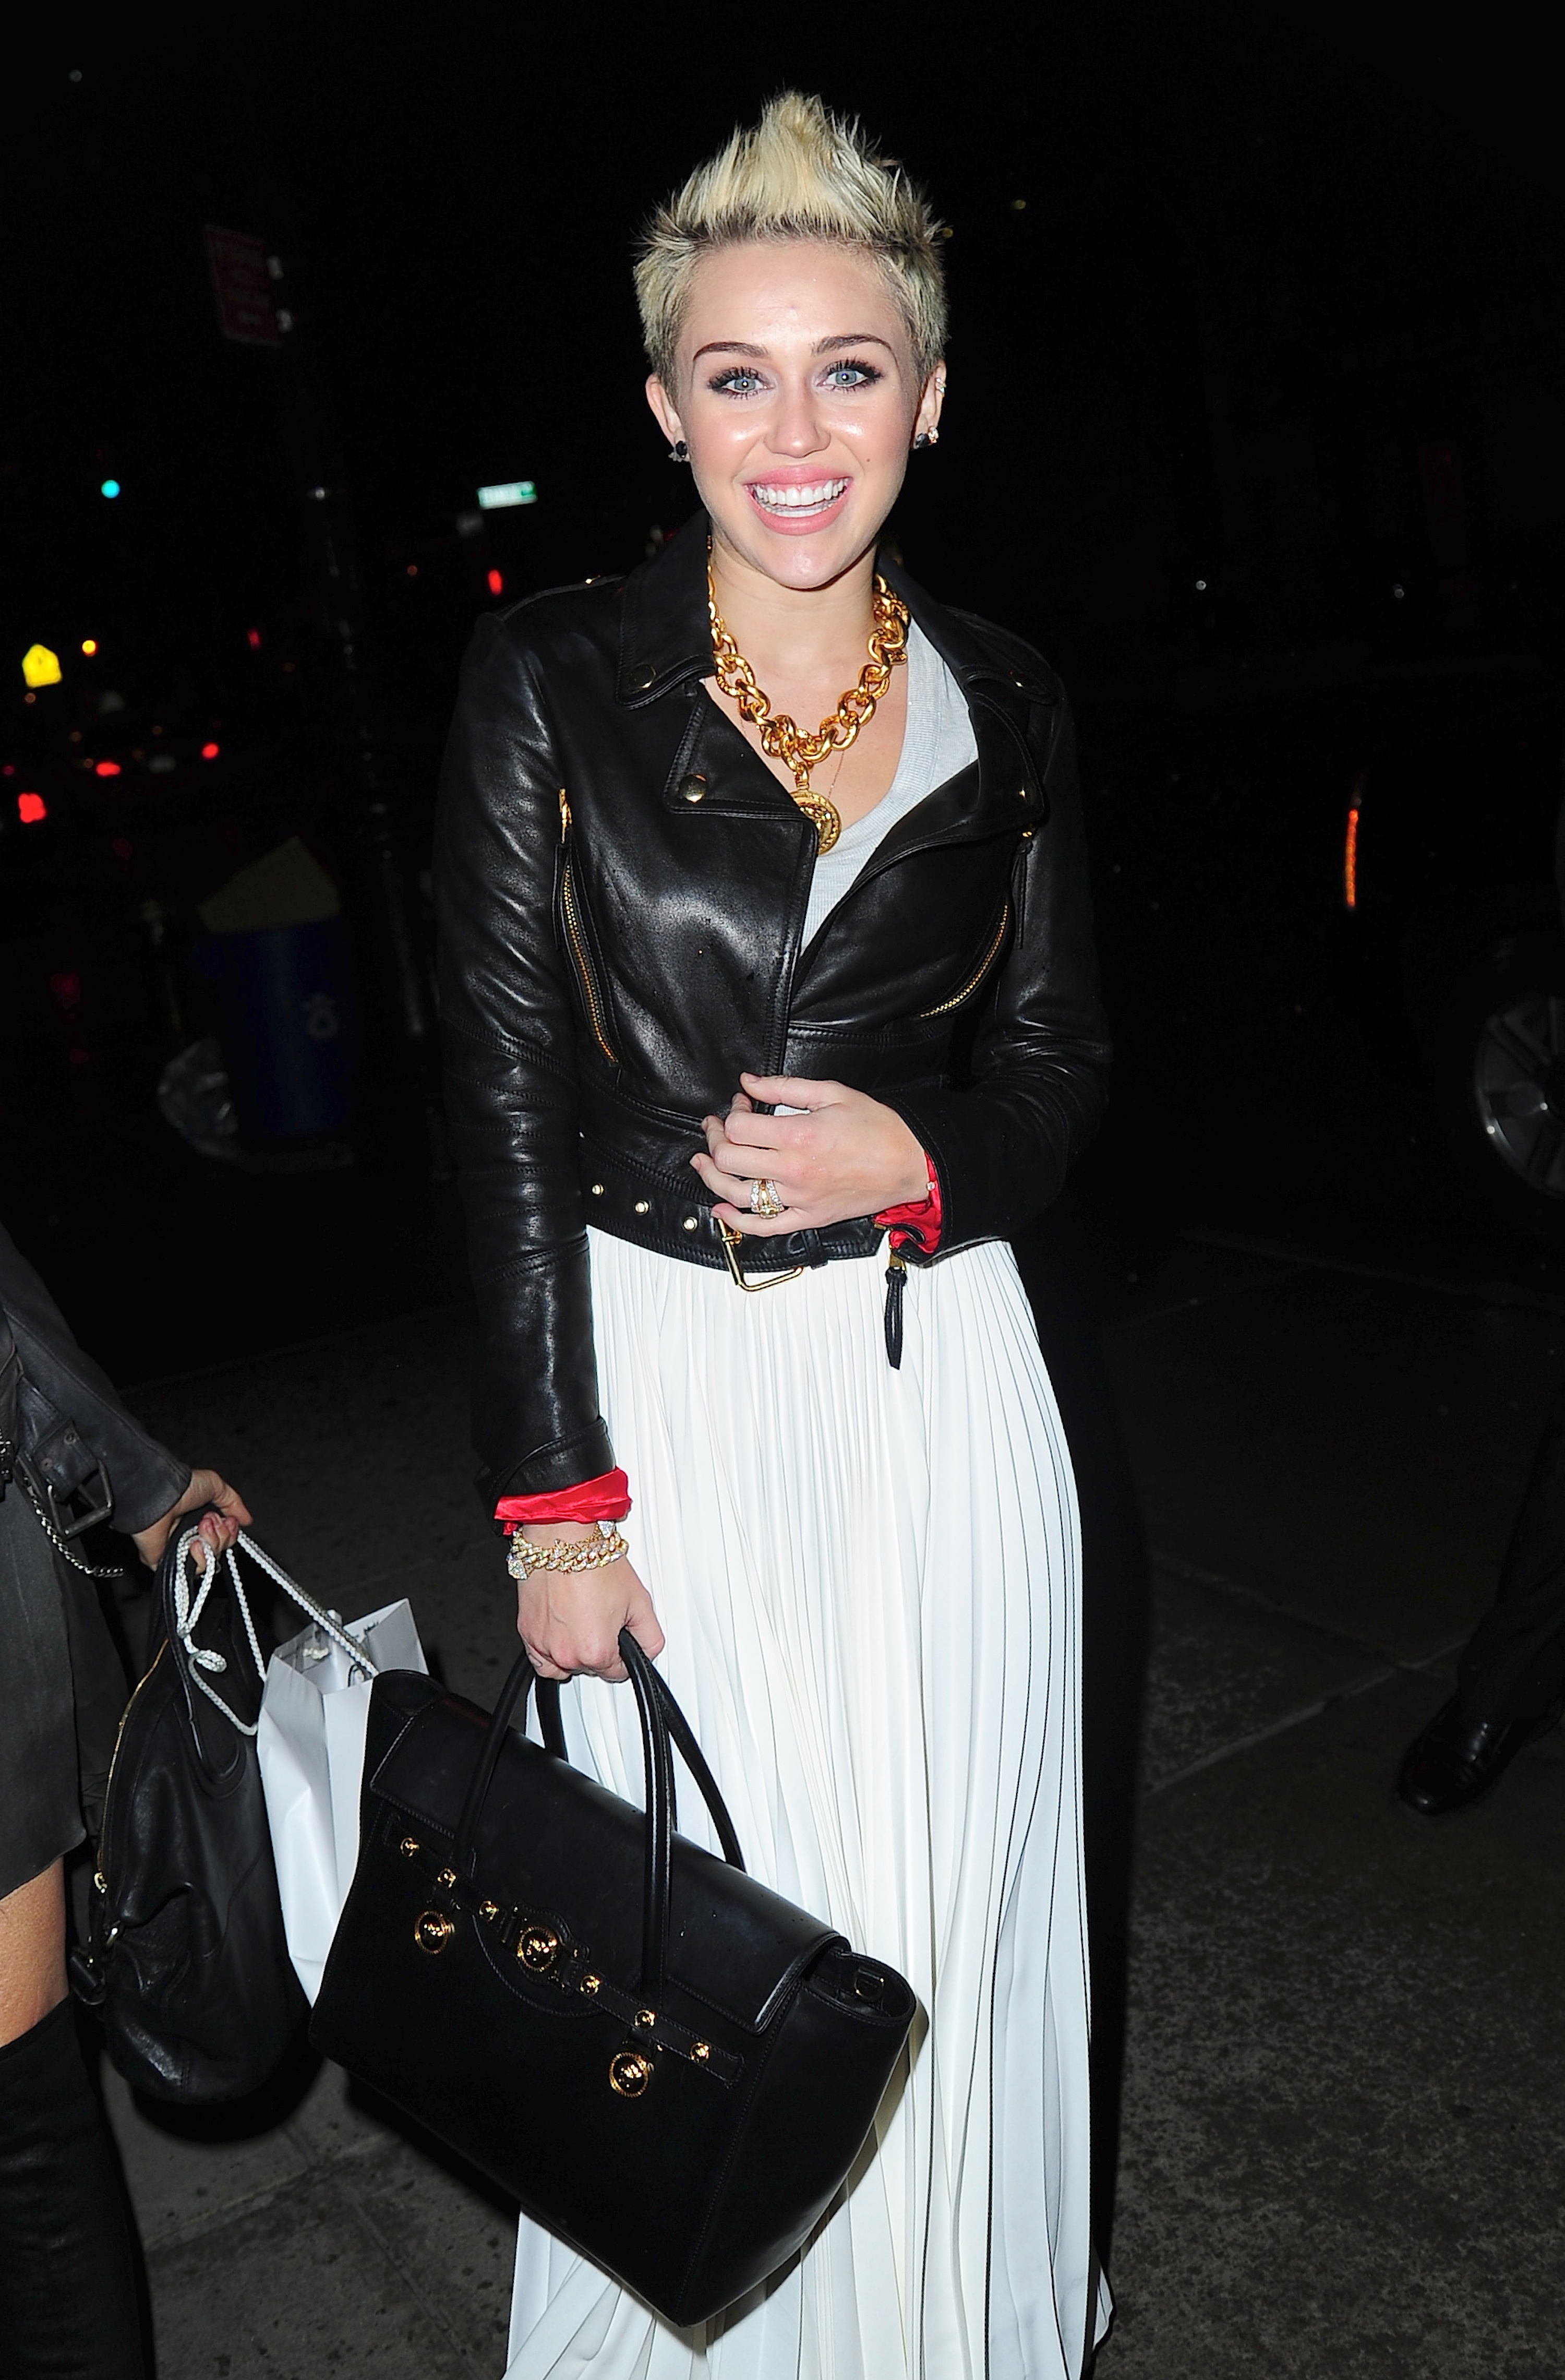 Miley Cyrus smiled on her way into the Cosmopolitan party in NYC.